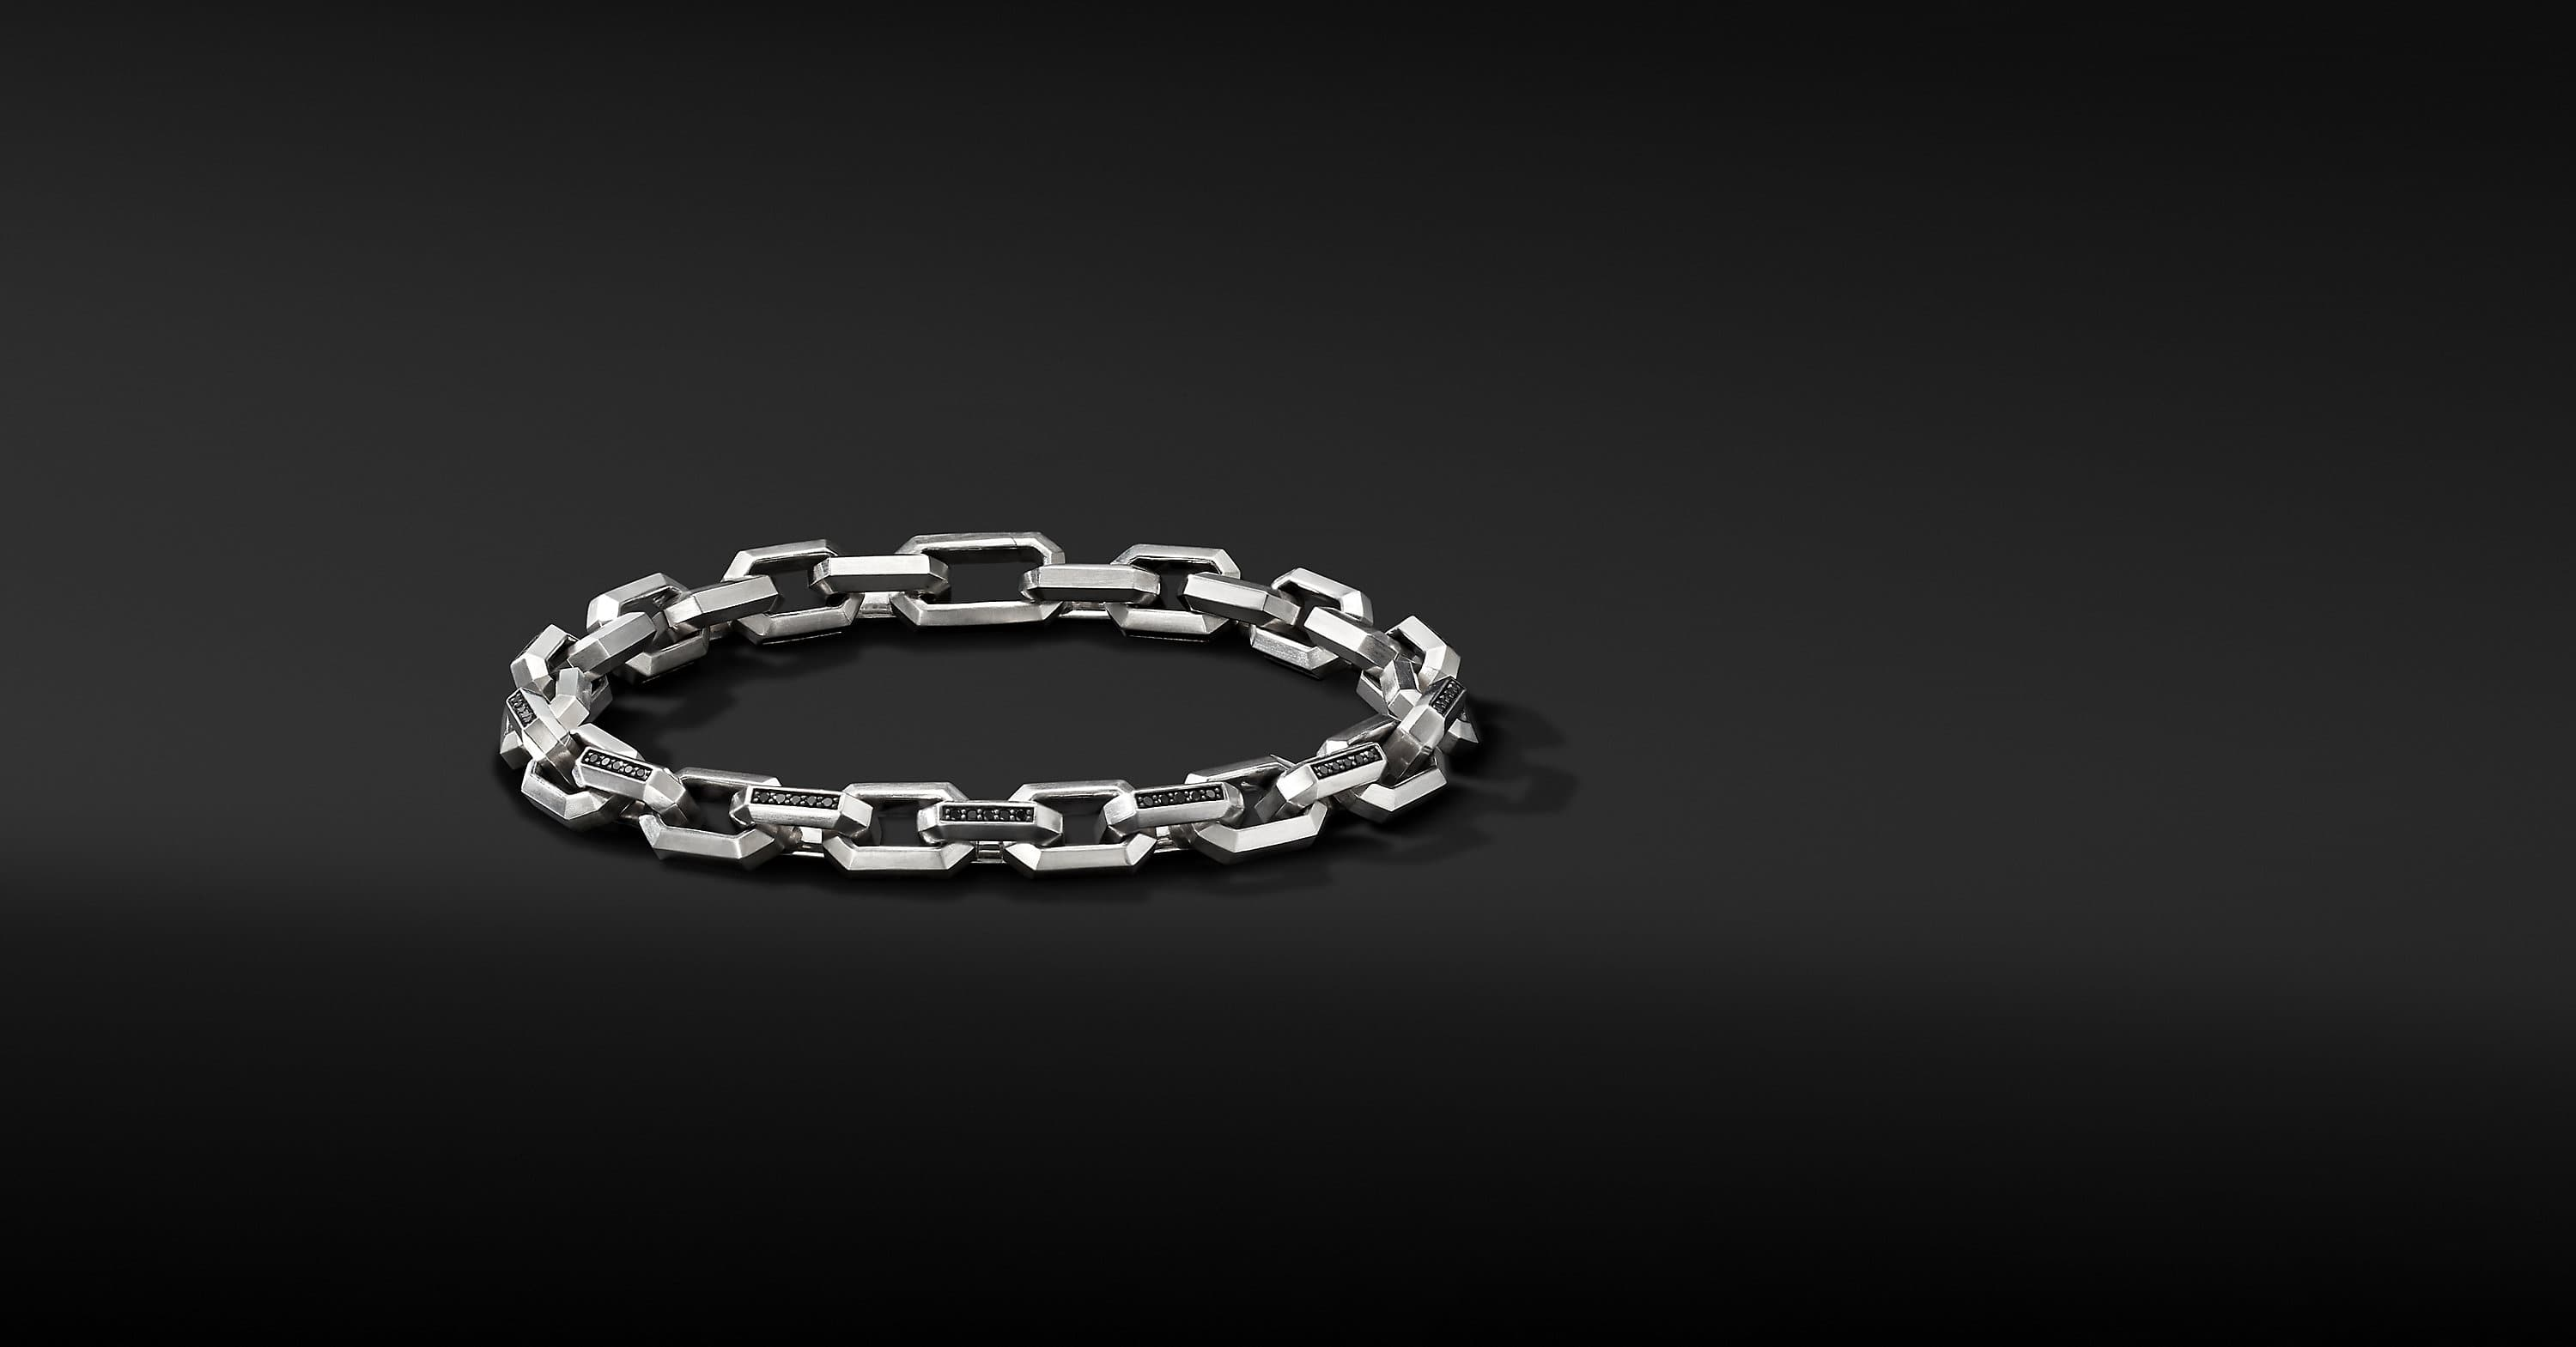 Heirloom Chain Link Bracelet, 7.5mm